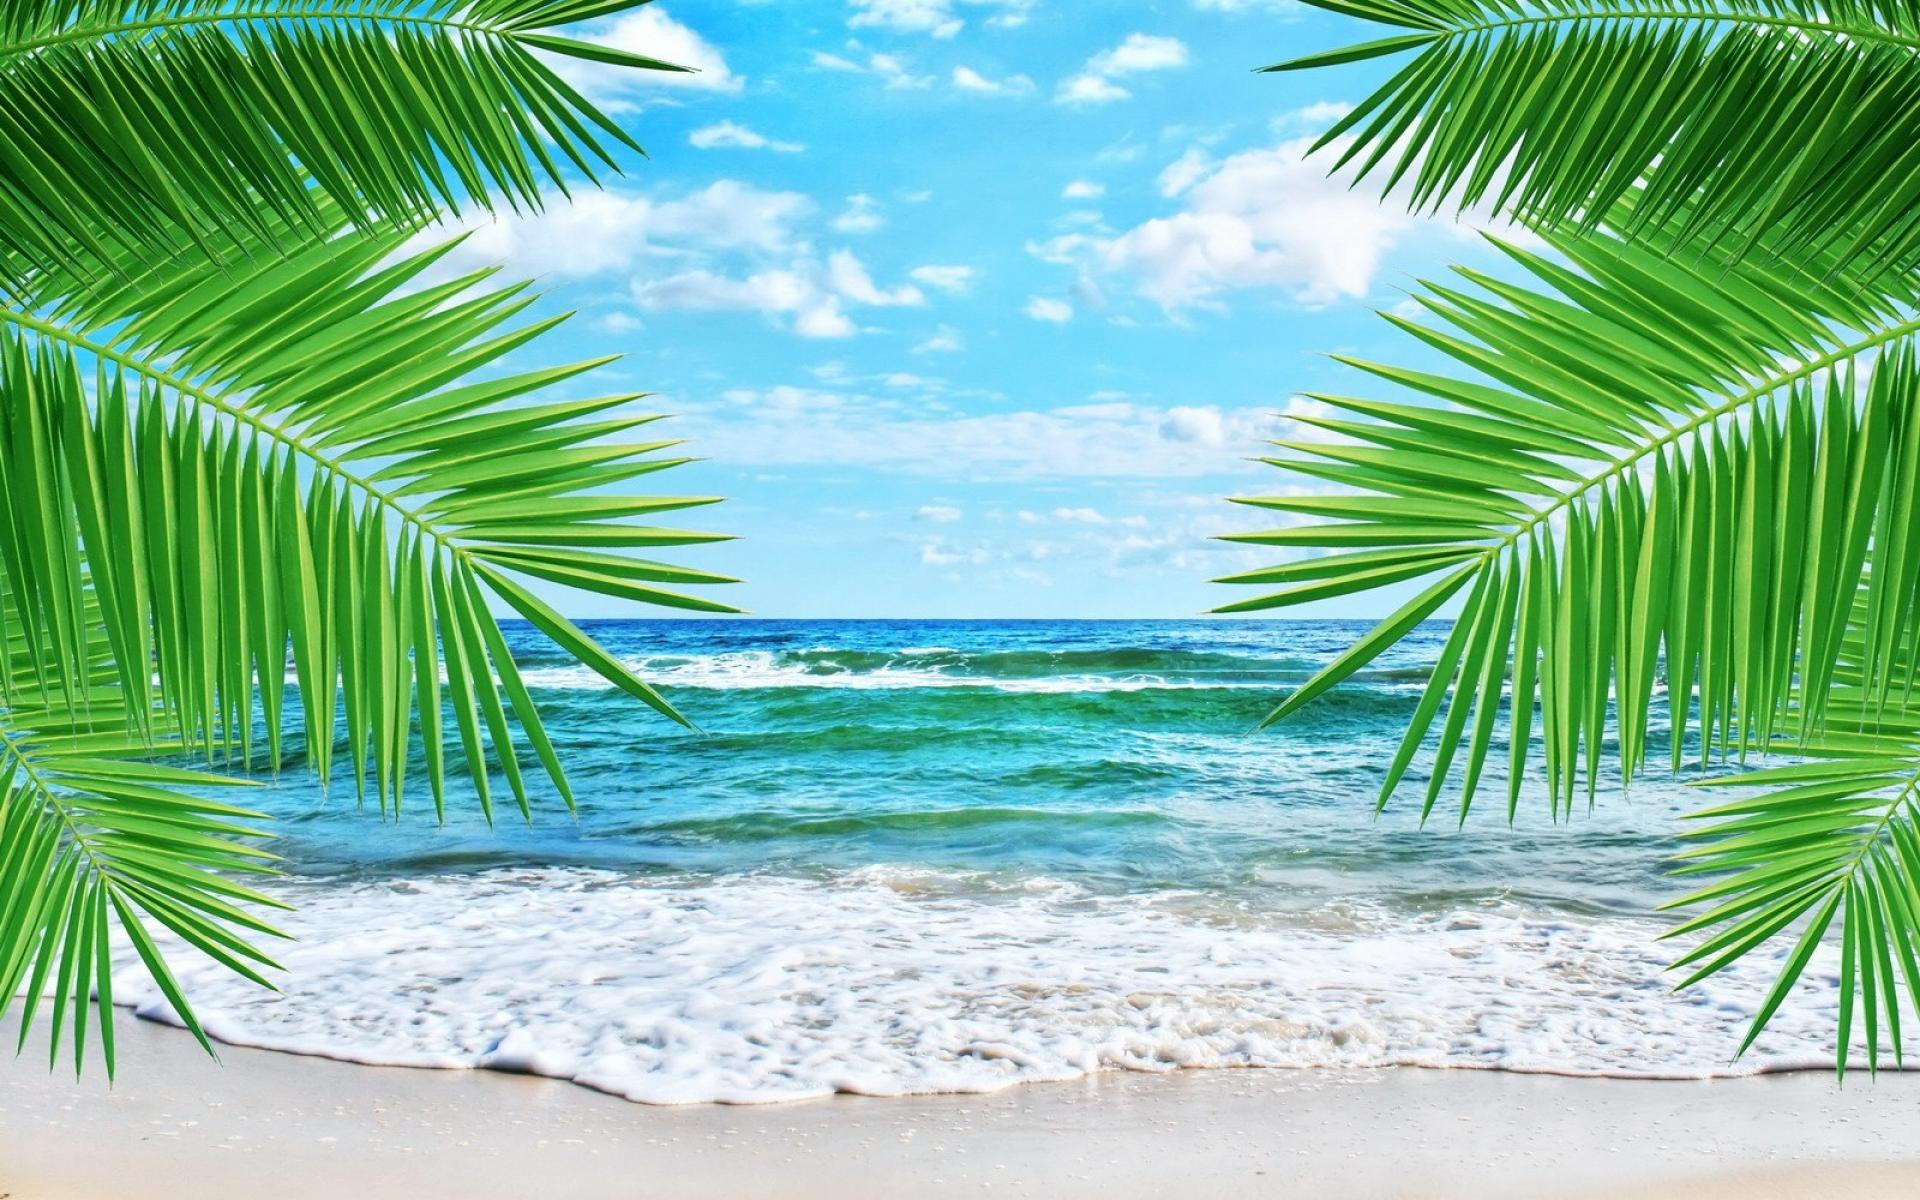 Hd Tropical Island Beach Paradise Wallpapers And Backgrounds: HD Tropical Wallpaper 1680x1050